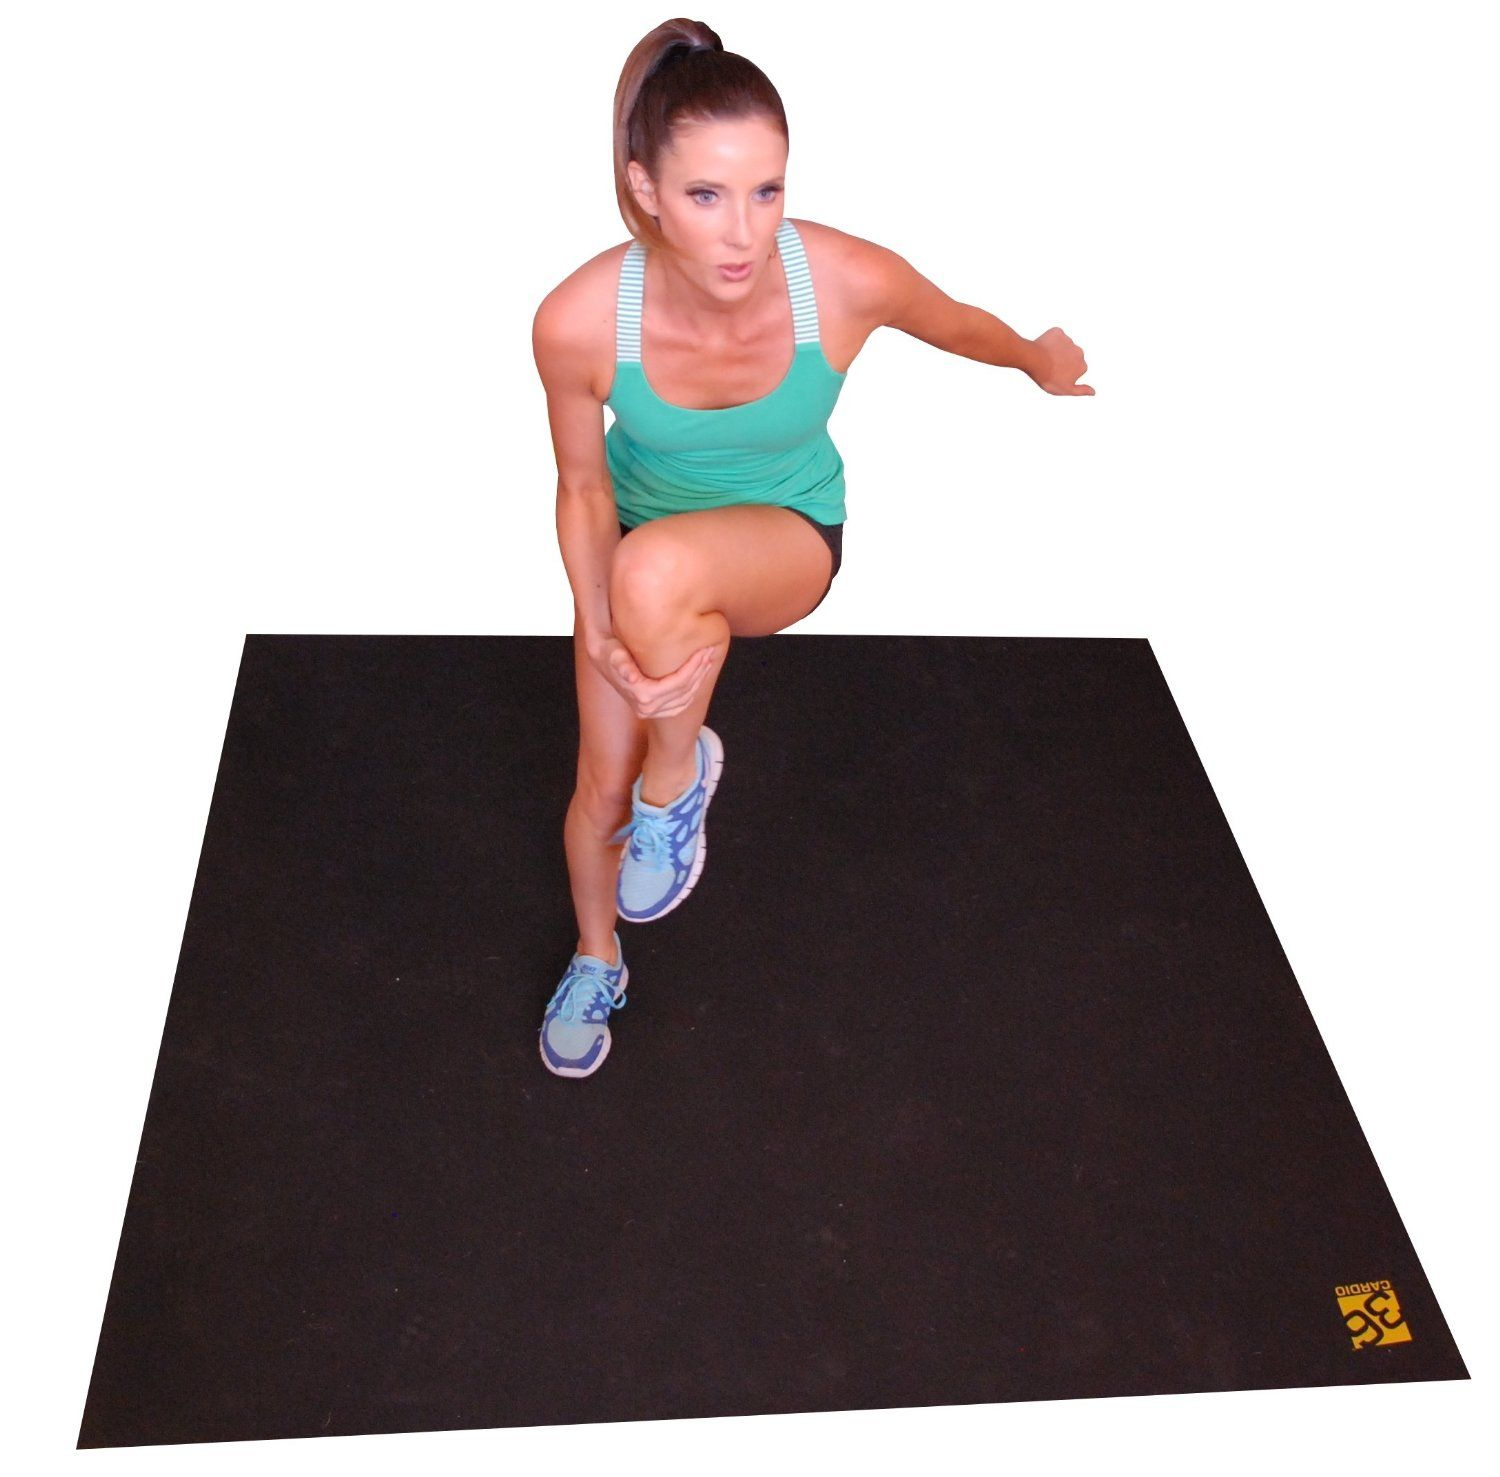 Insanity Workout Mat Recommendations